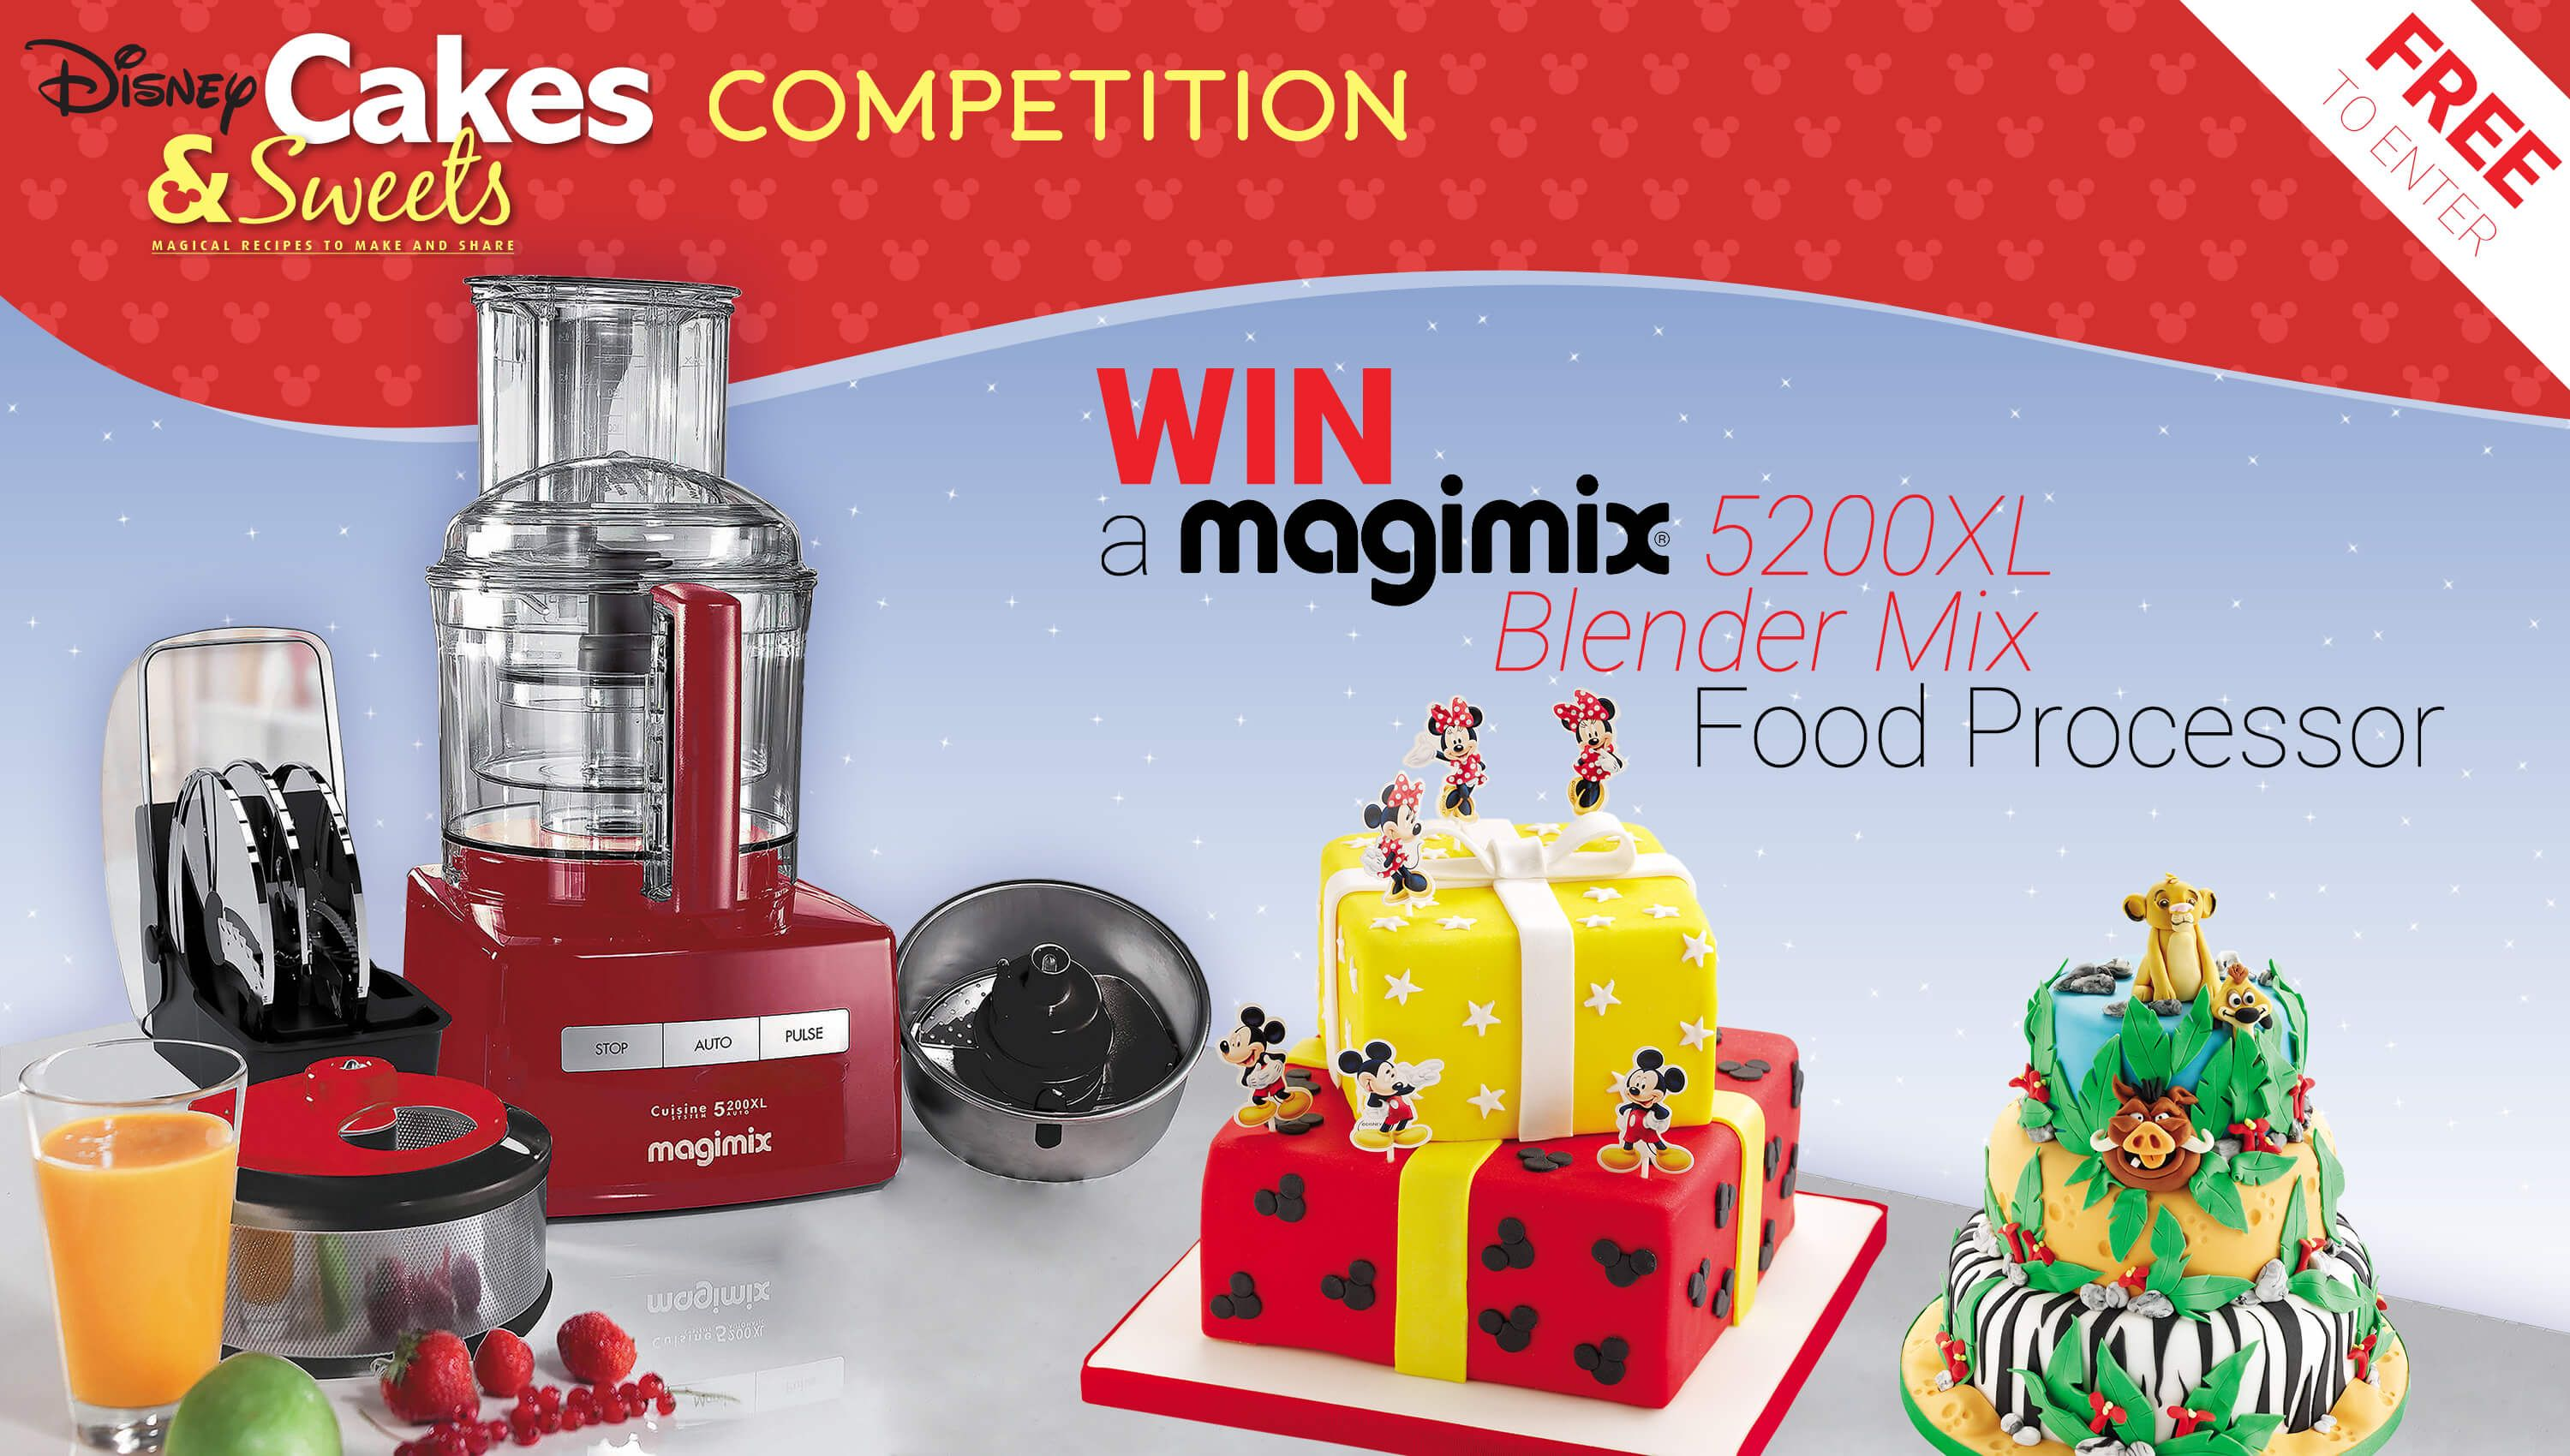 Win A Magimix Blendermix Food Processor Worth 399 99 In 2020 Food Processor Recipes Cake Competition Disney Cakes